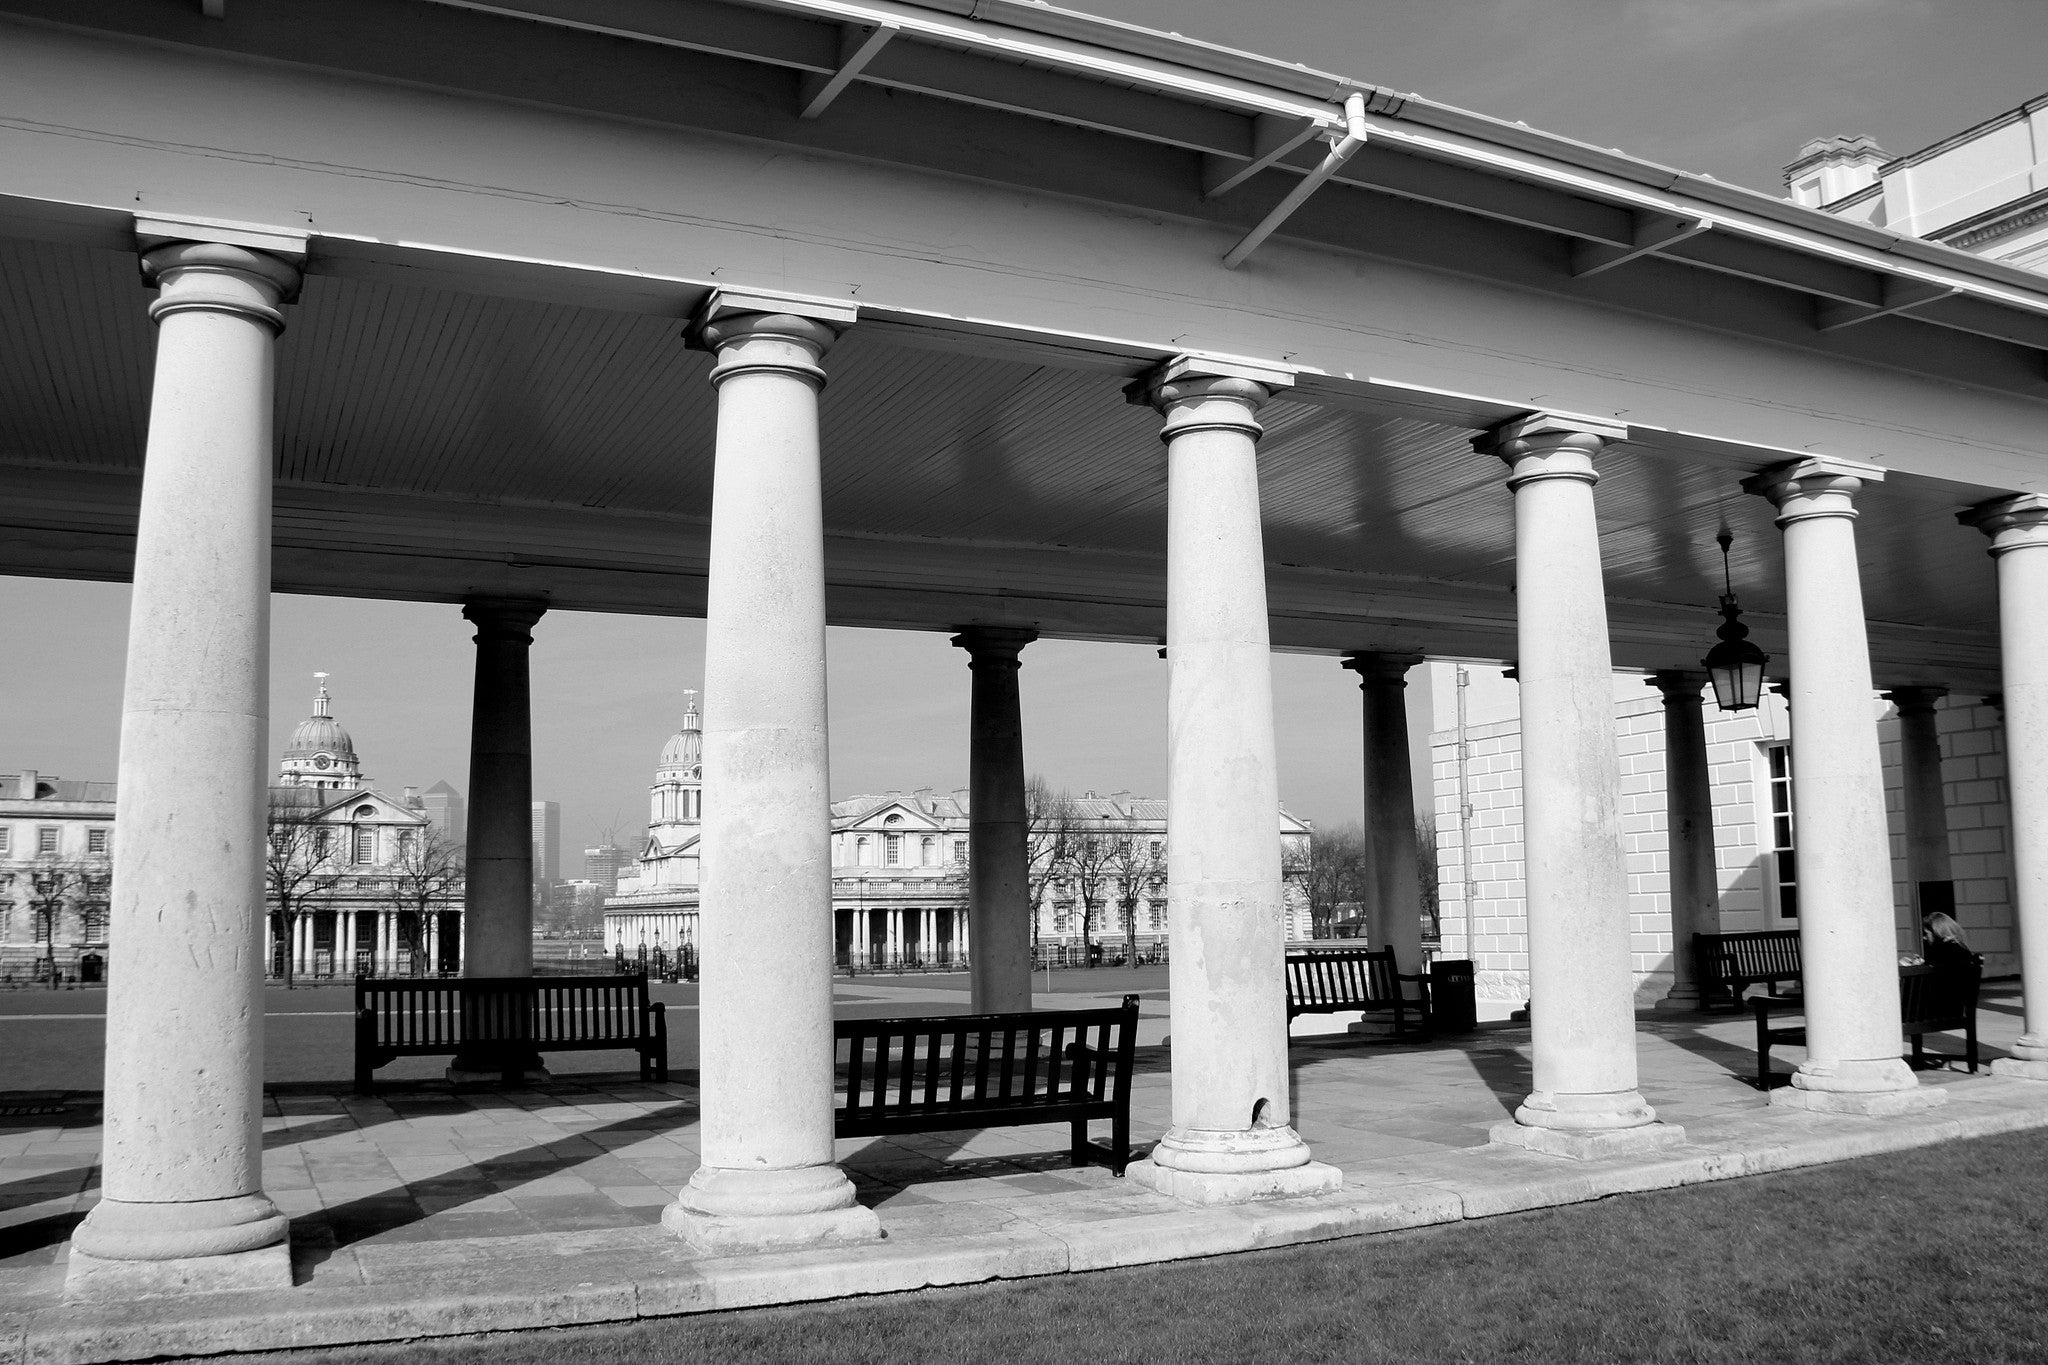 Queen's House Colonnade, Greenwich